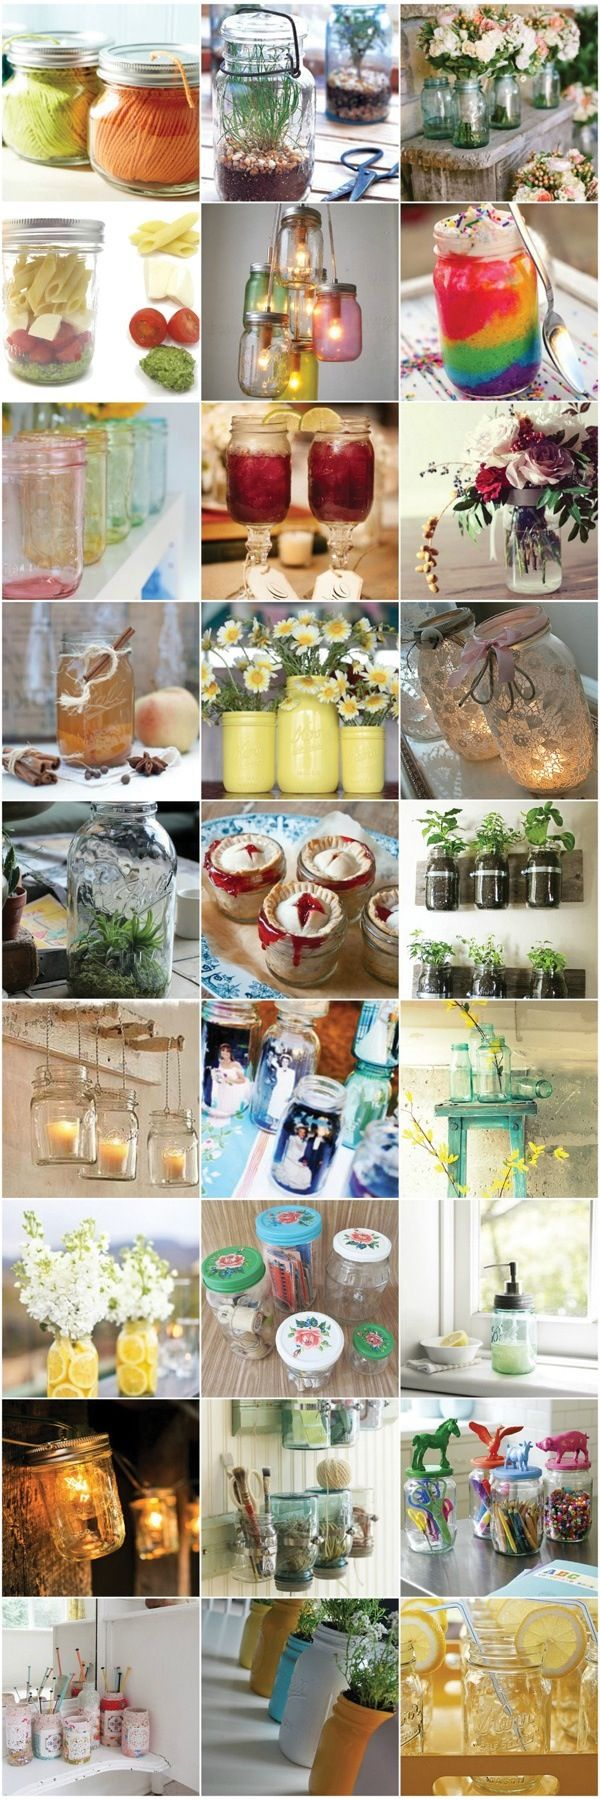 DIY mason jar ideas